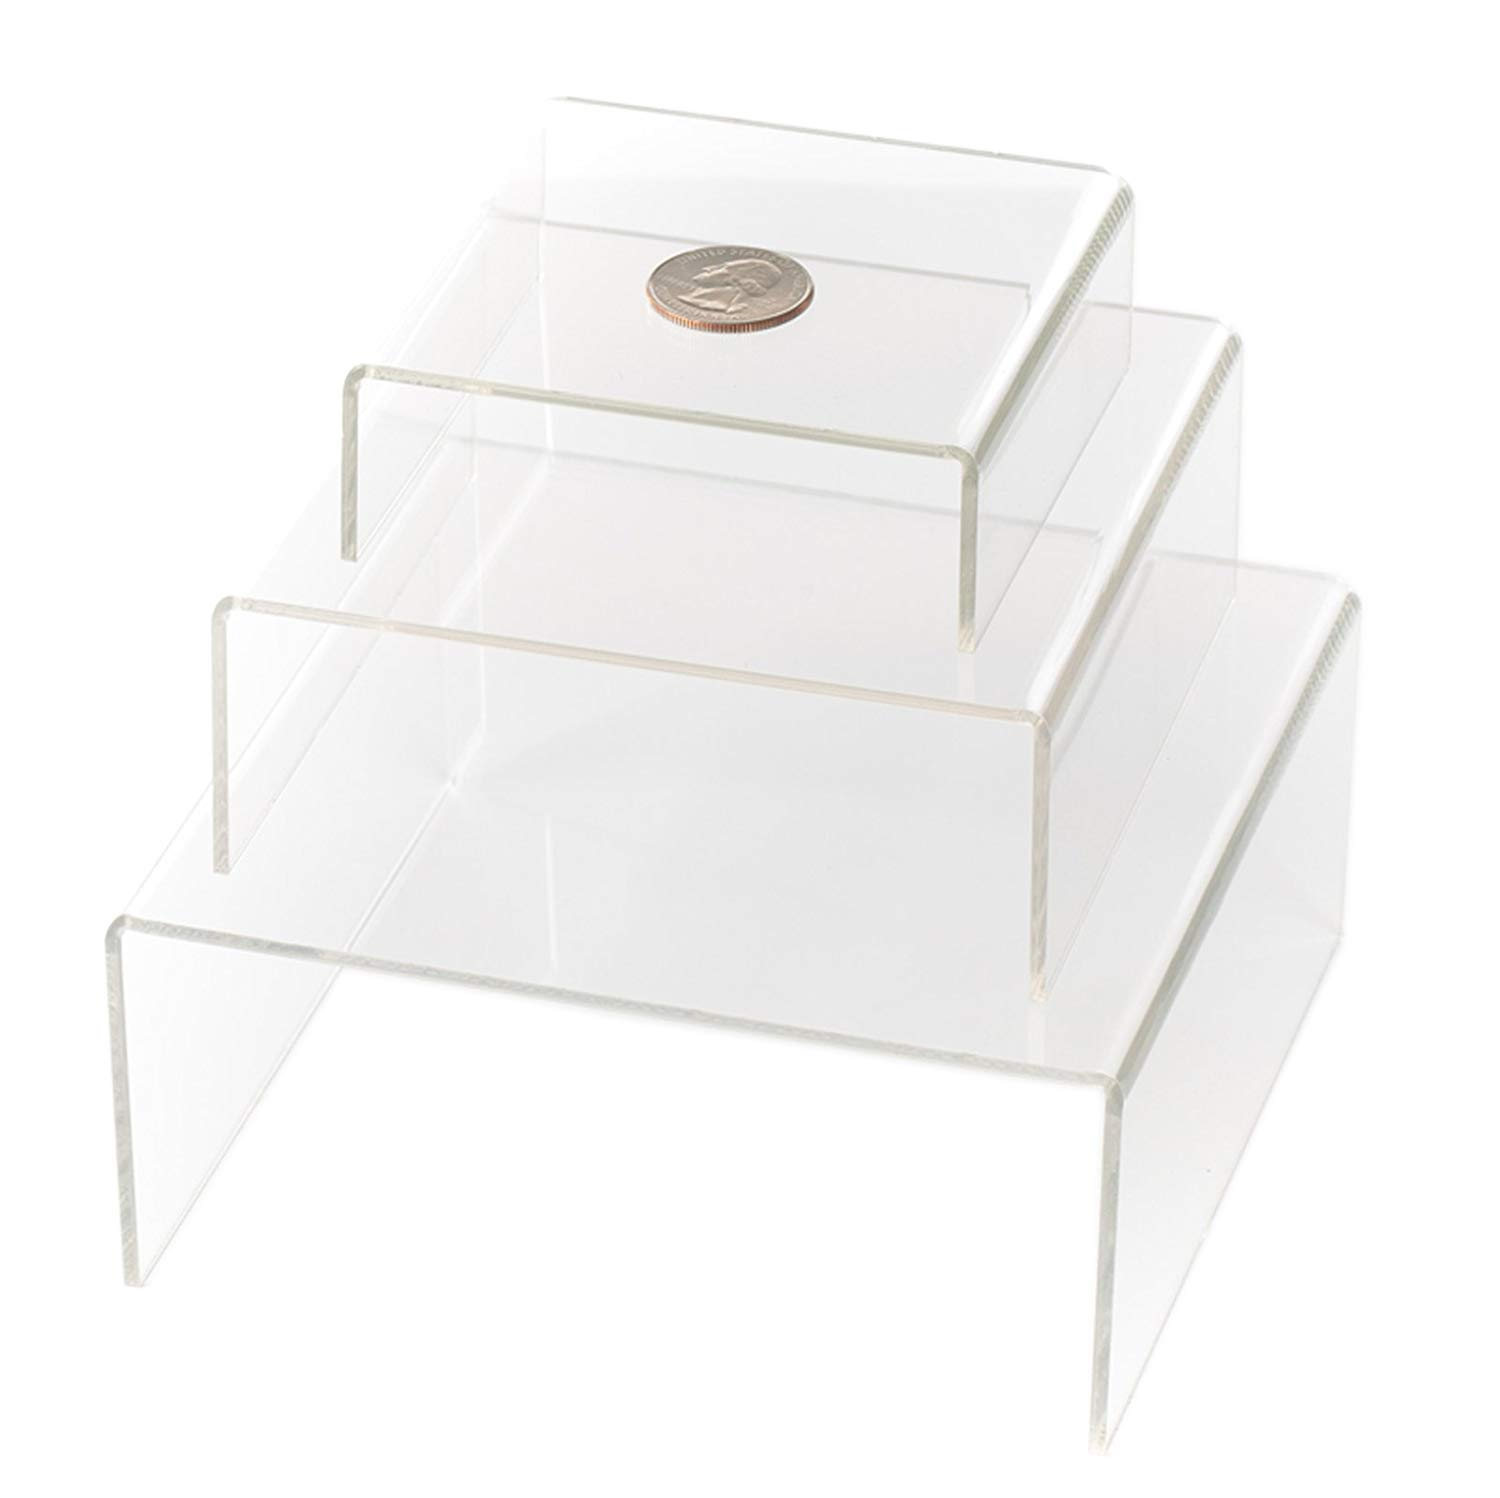 Huji Clear Medium Low Profile Set of 3 Acrylic Risers Display Stands (2 Set, Clear Acrylic Risers) by Huji (Image #1)